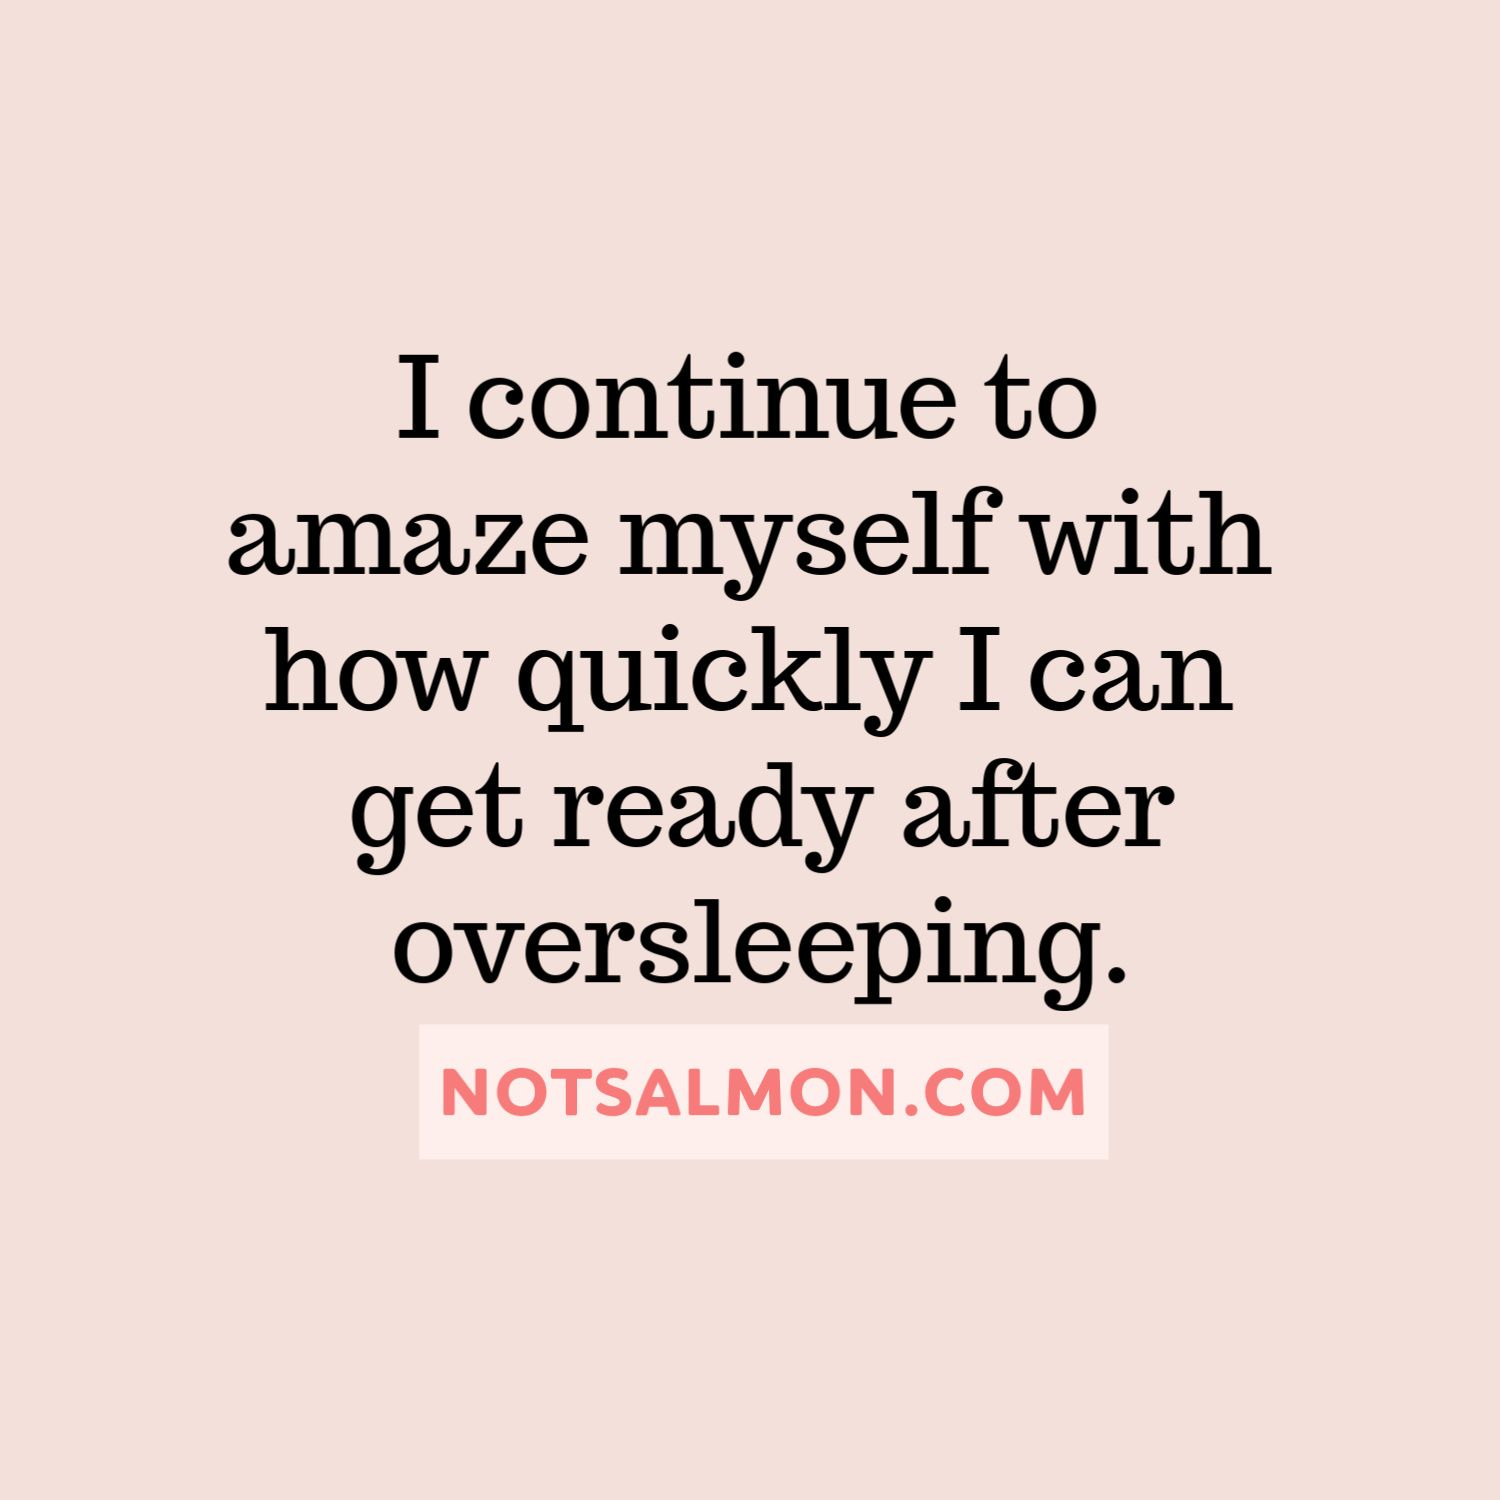 20 Funny Quotes Of The Day And Hilarious Sayings About Life Funny Quotes About Life Funny Quotes Life Quotes